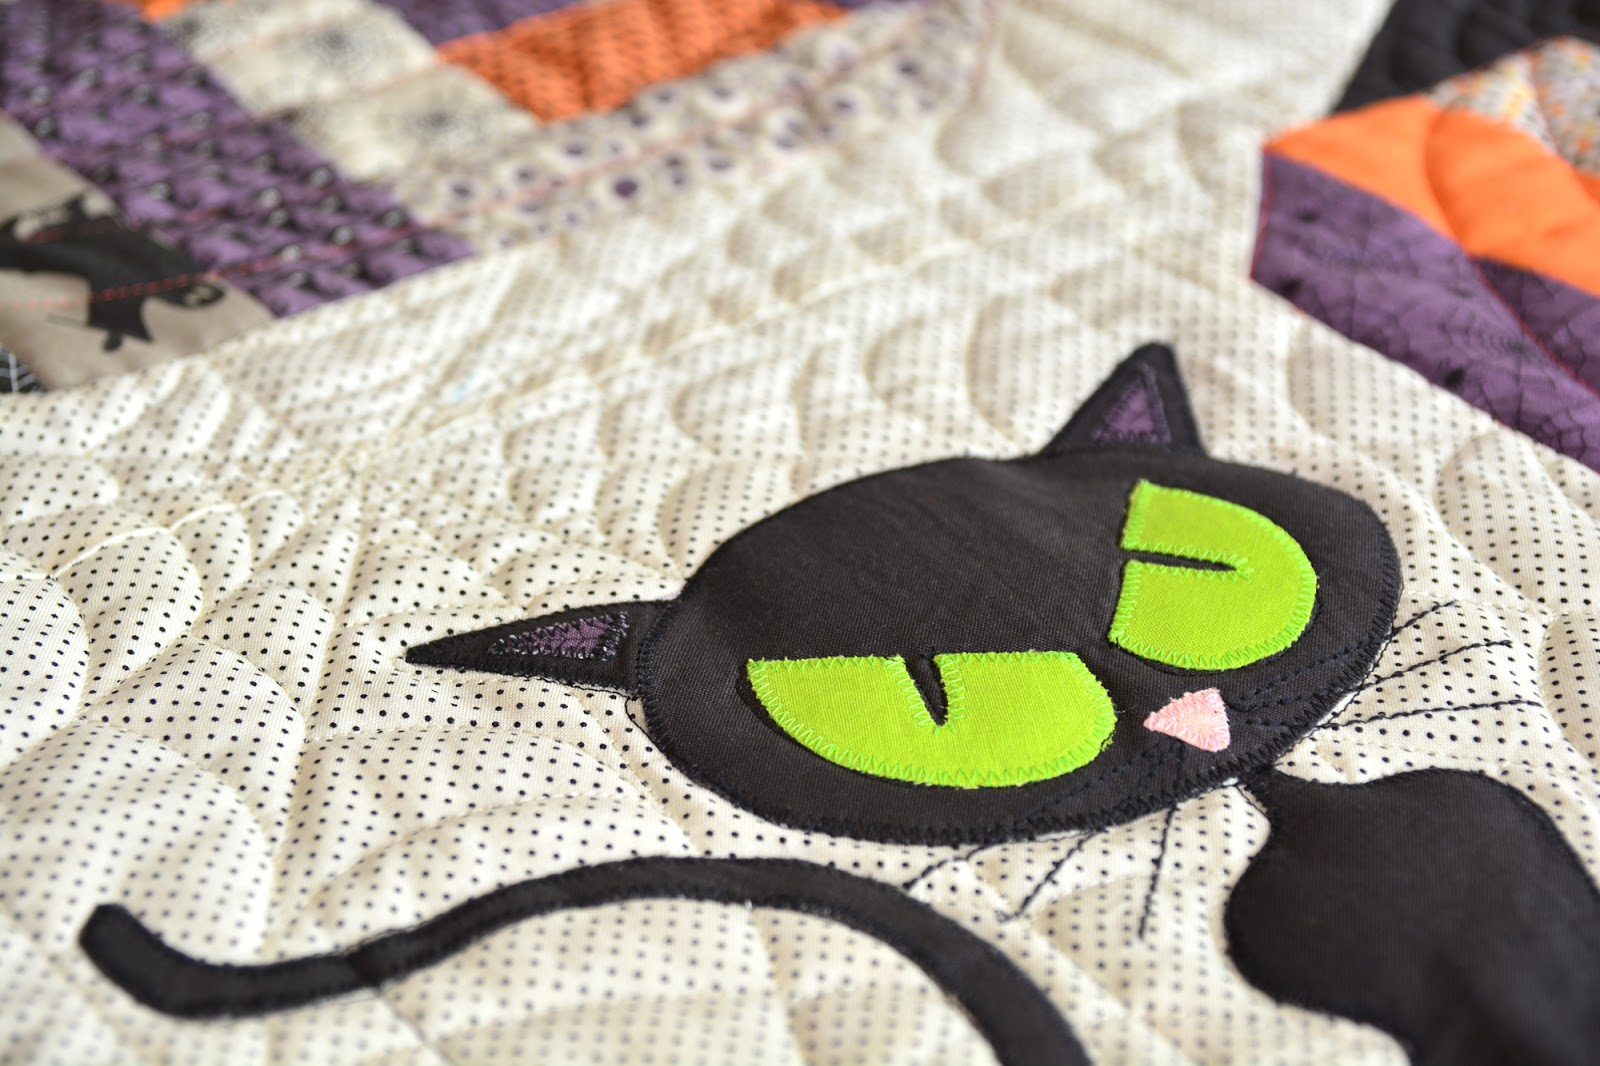 Quilt Oase Nersingen Easypatchwork Bad Kitty In The Pumpkin Patch